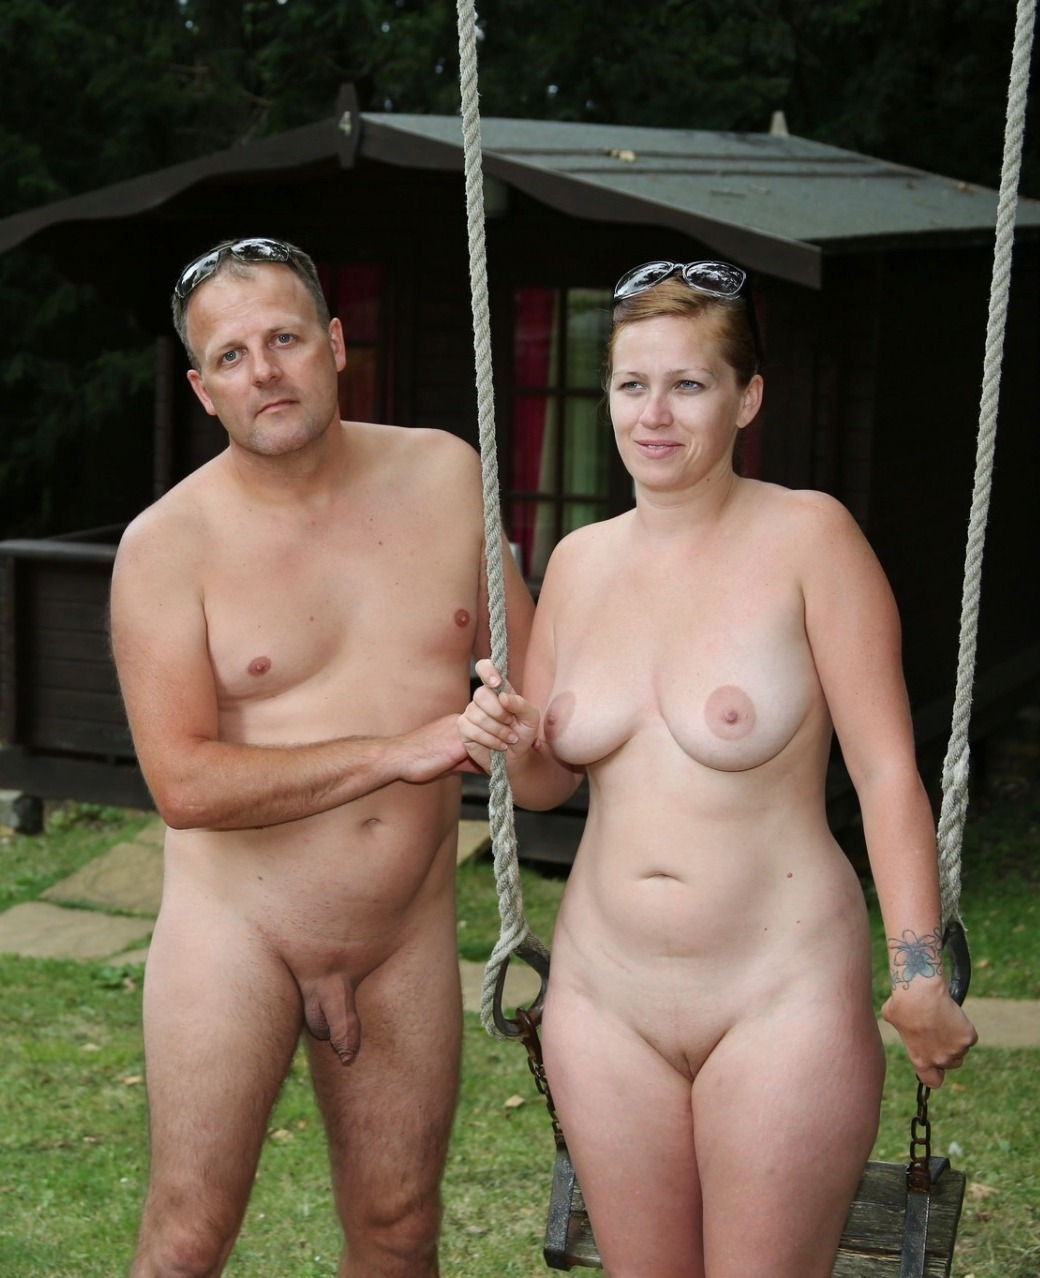 Vintage nudist naturist couples